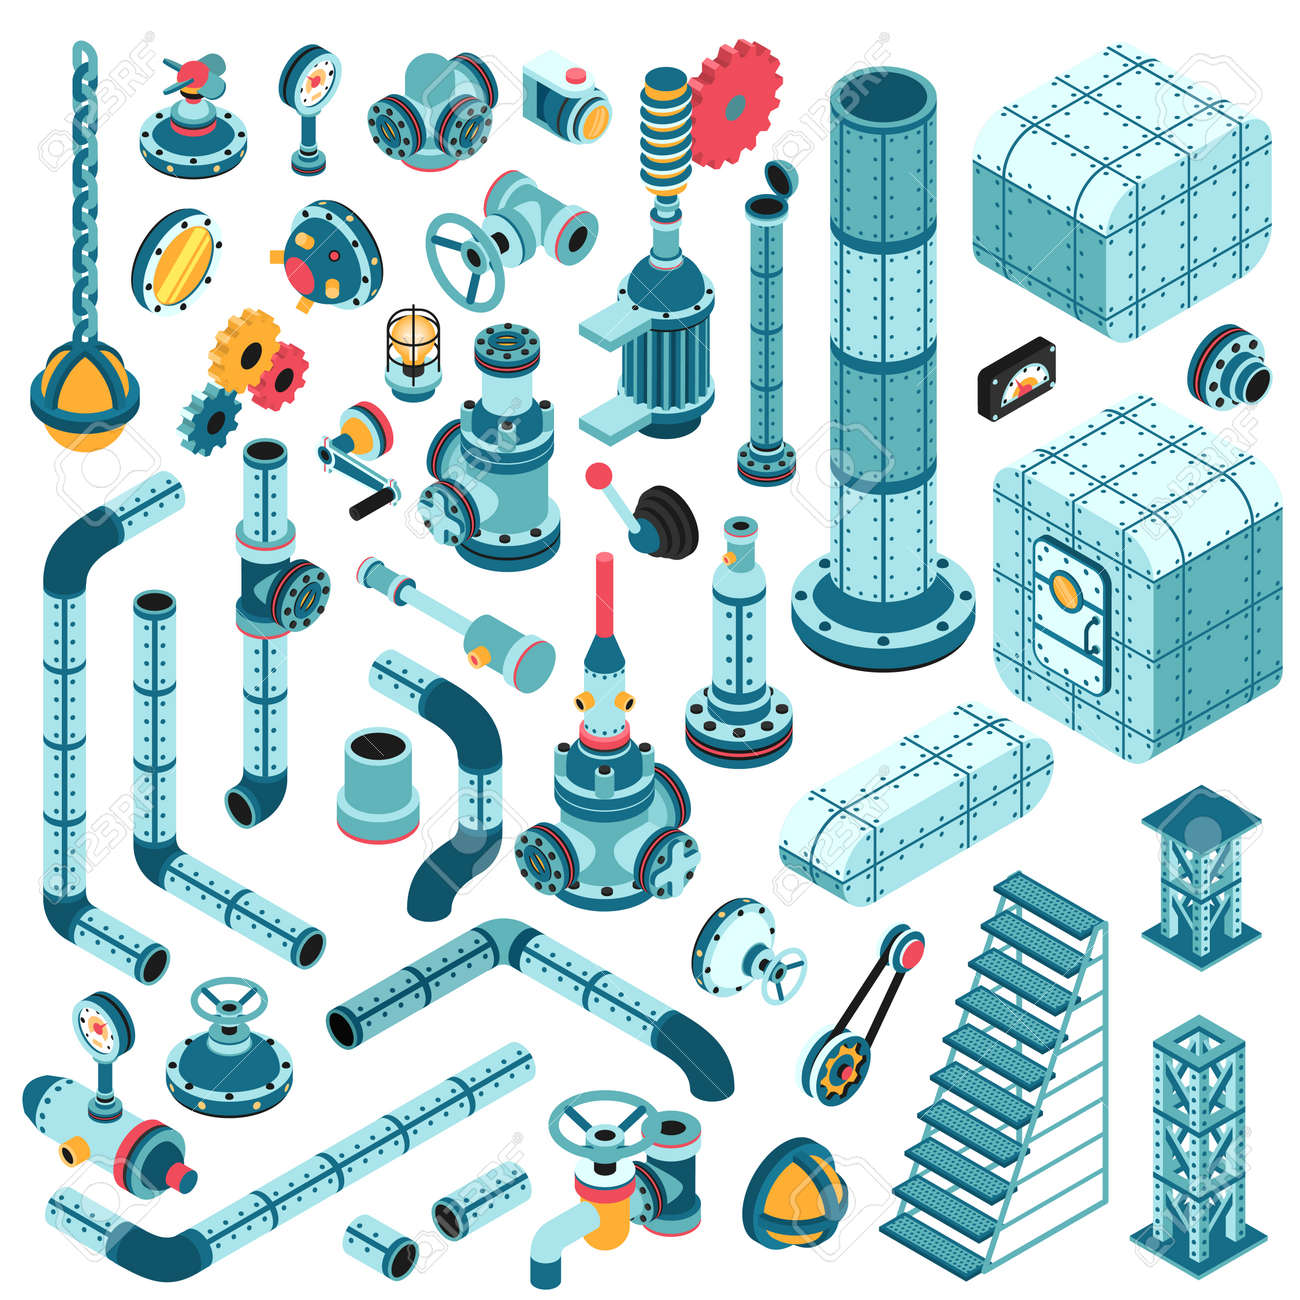 Spare parts for creating complex industrial machines - pipes, cranes, hulls, valves, splitters, fittings, flanges, portholes and so on. Isometric 3d illustration. Stock Vector - 92406290